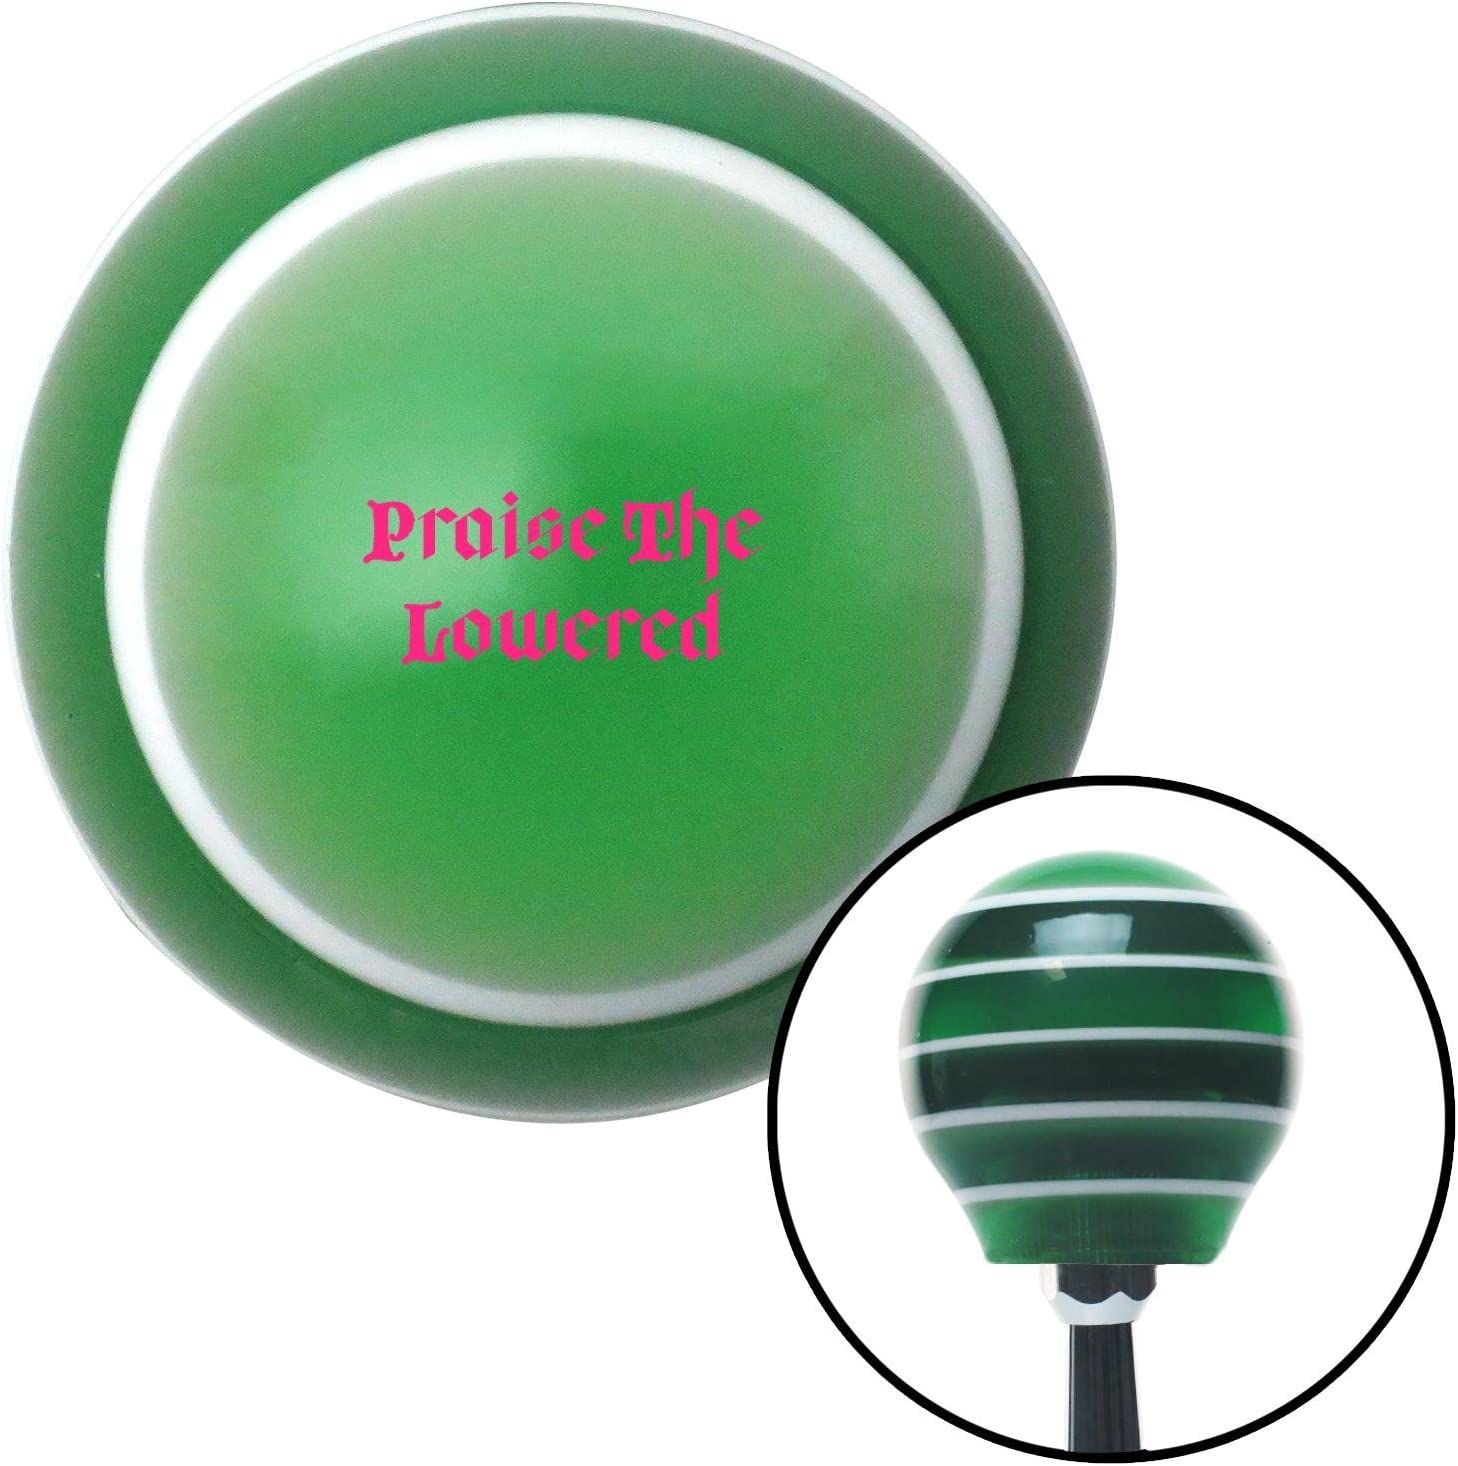 American Shifter 275886 Shift Knob Pink Praise The Lowered Green Stripe with M16 x 1.5 Insert